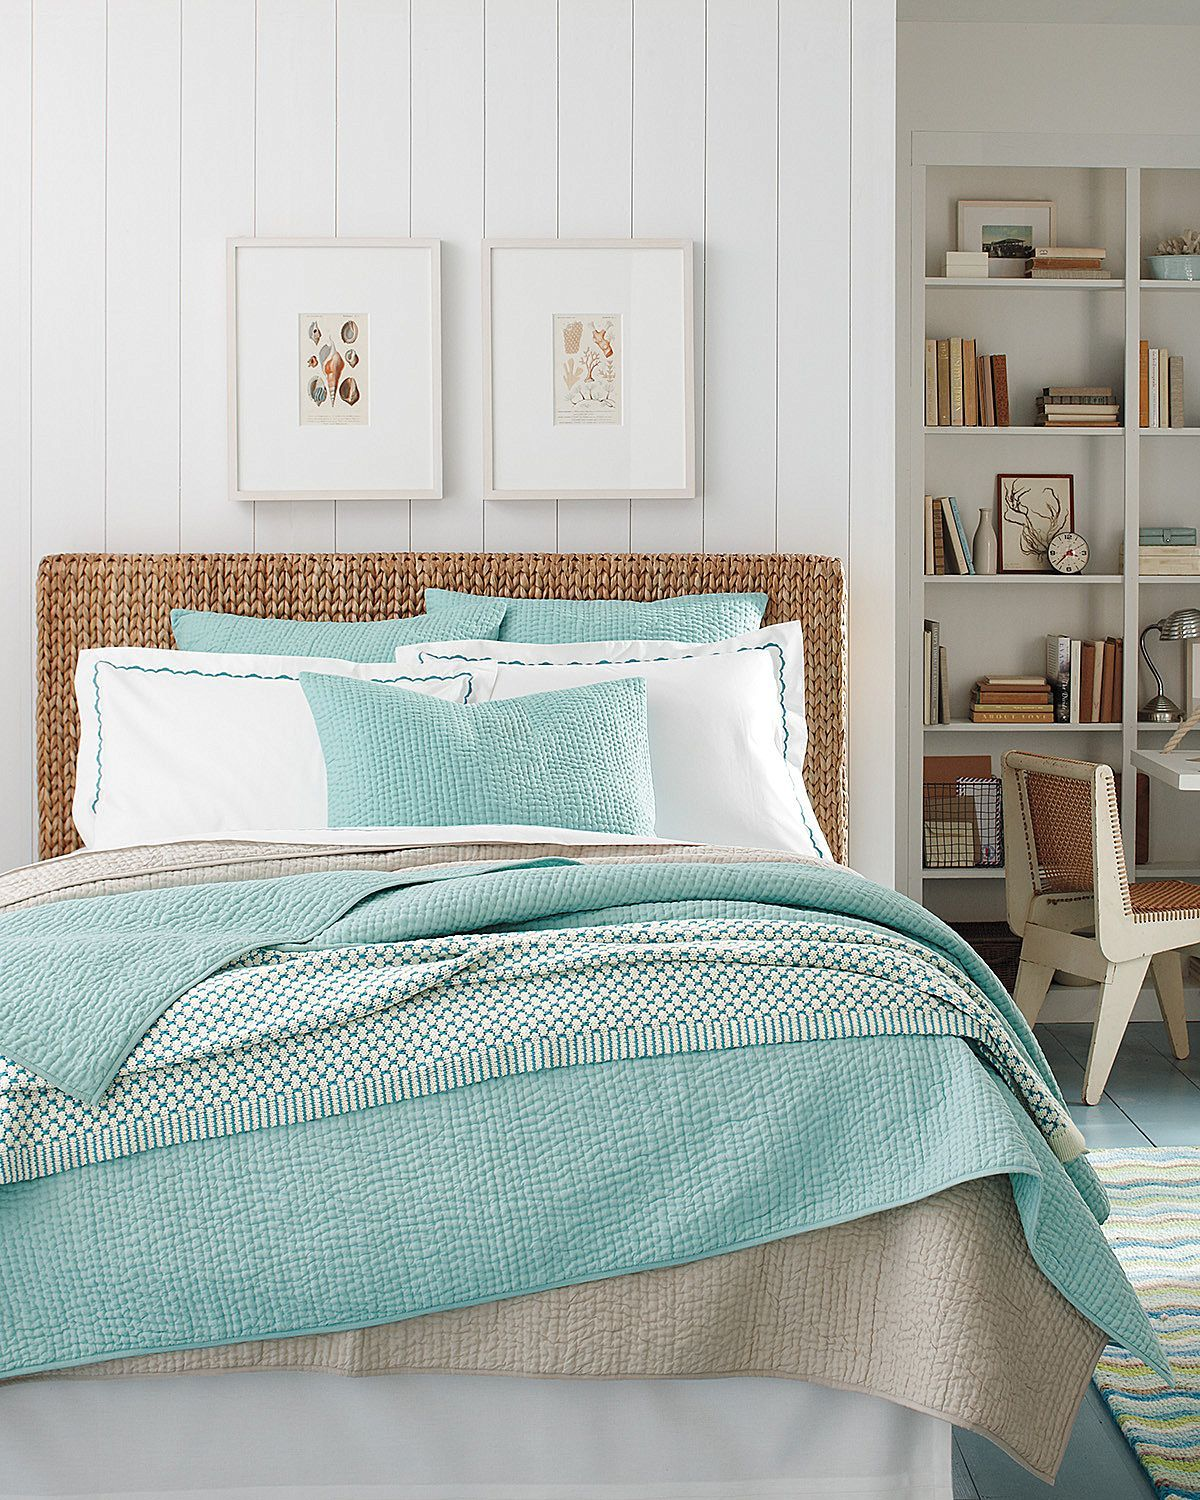 Matrimonio Bed Ocean : Ocean inspired coastal blues mimbre rattan decoración de